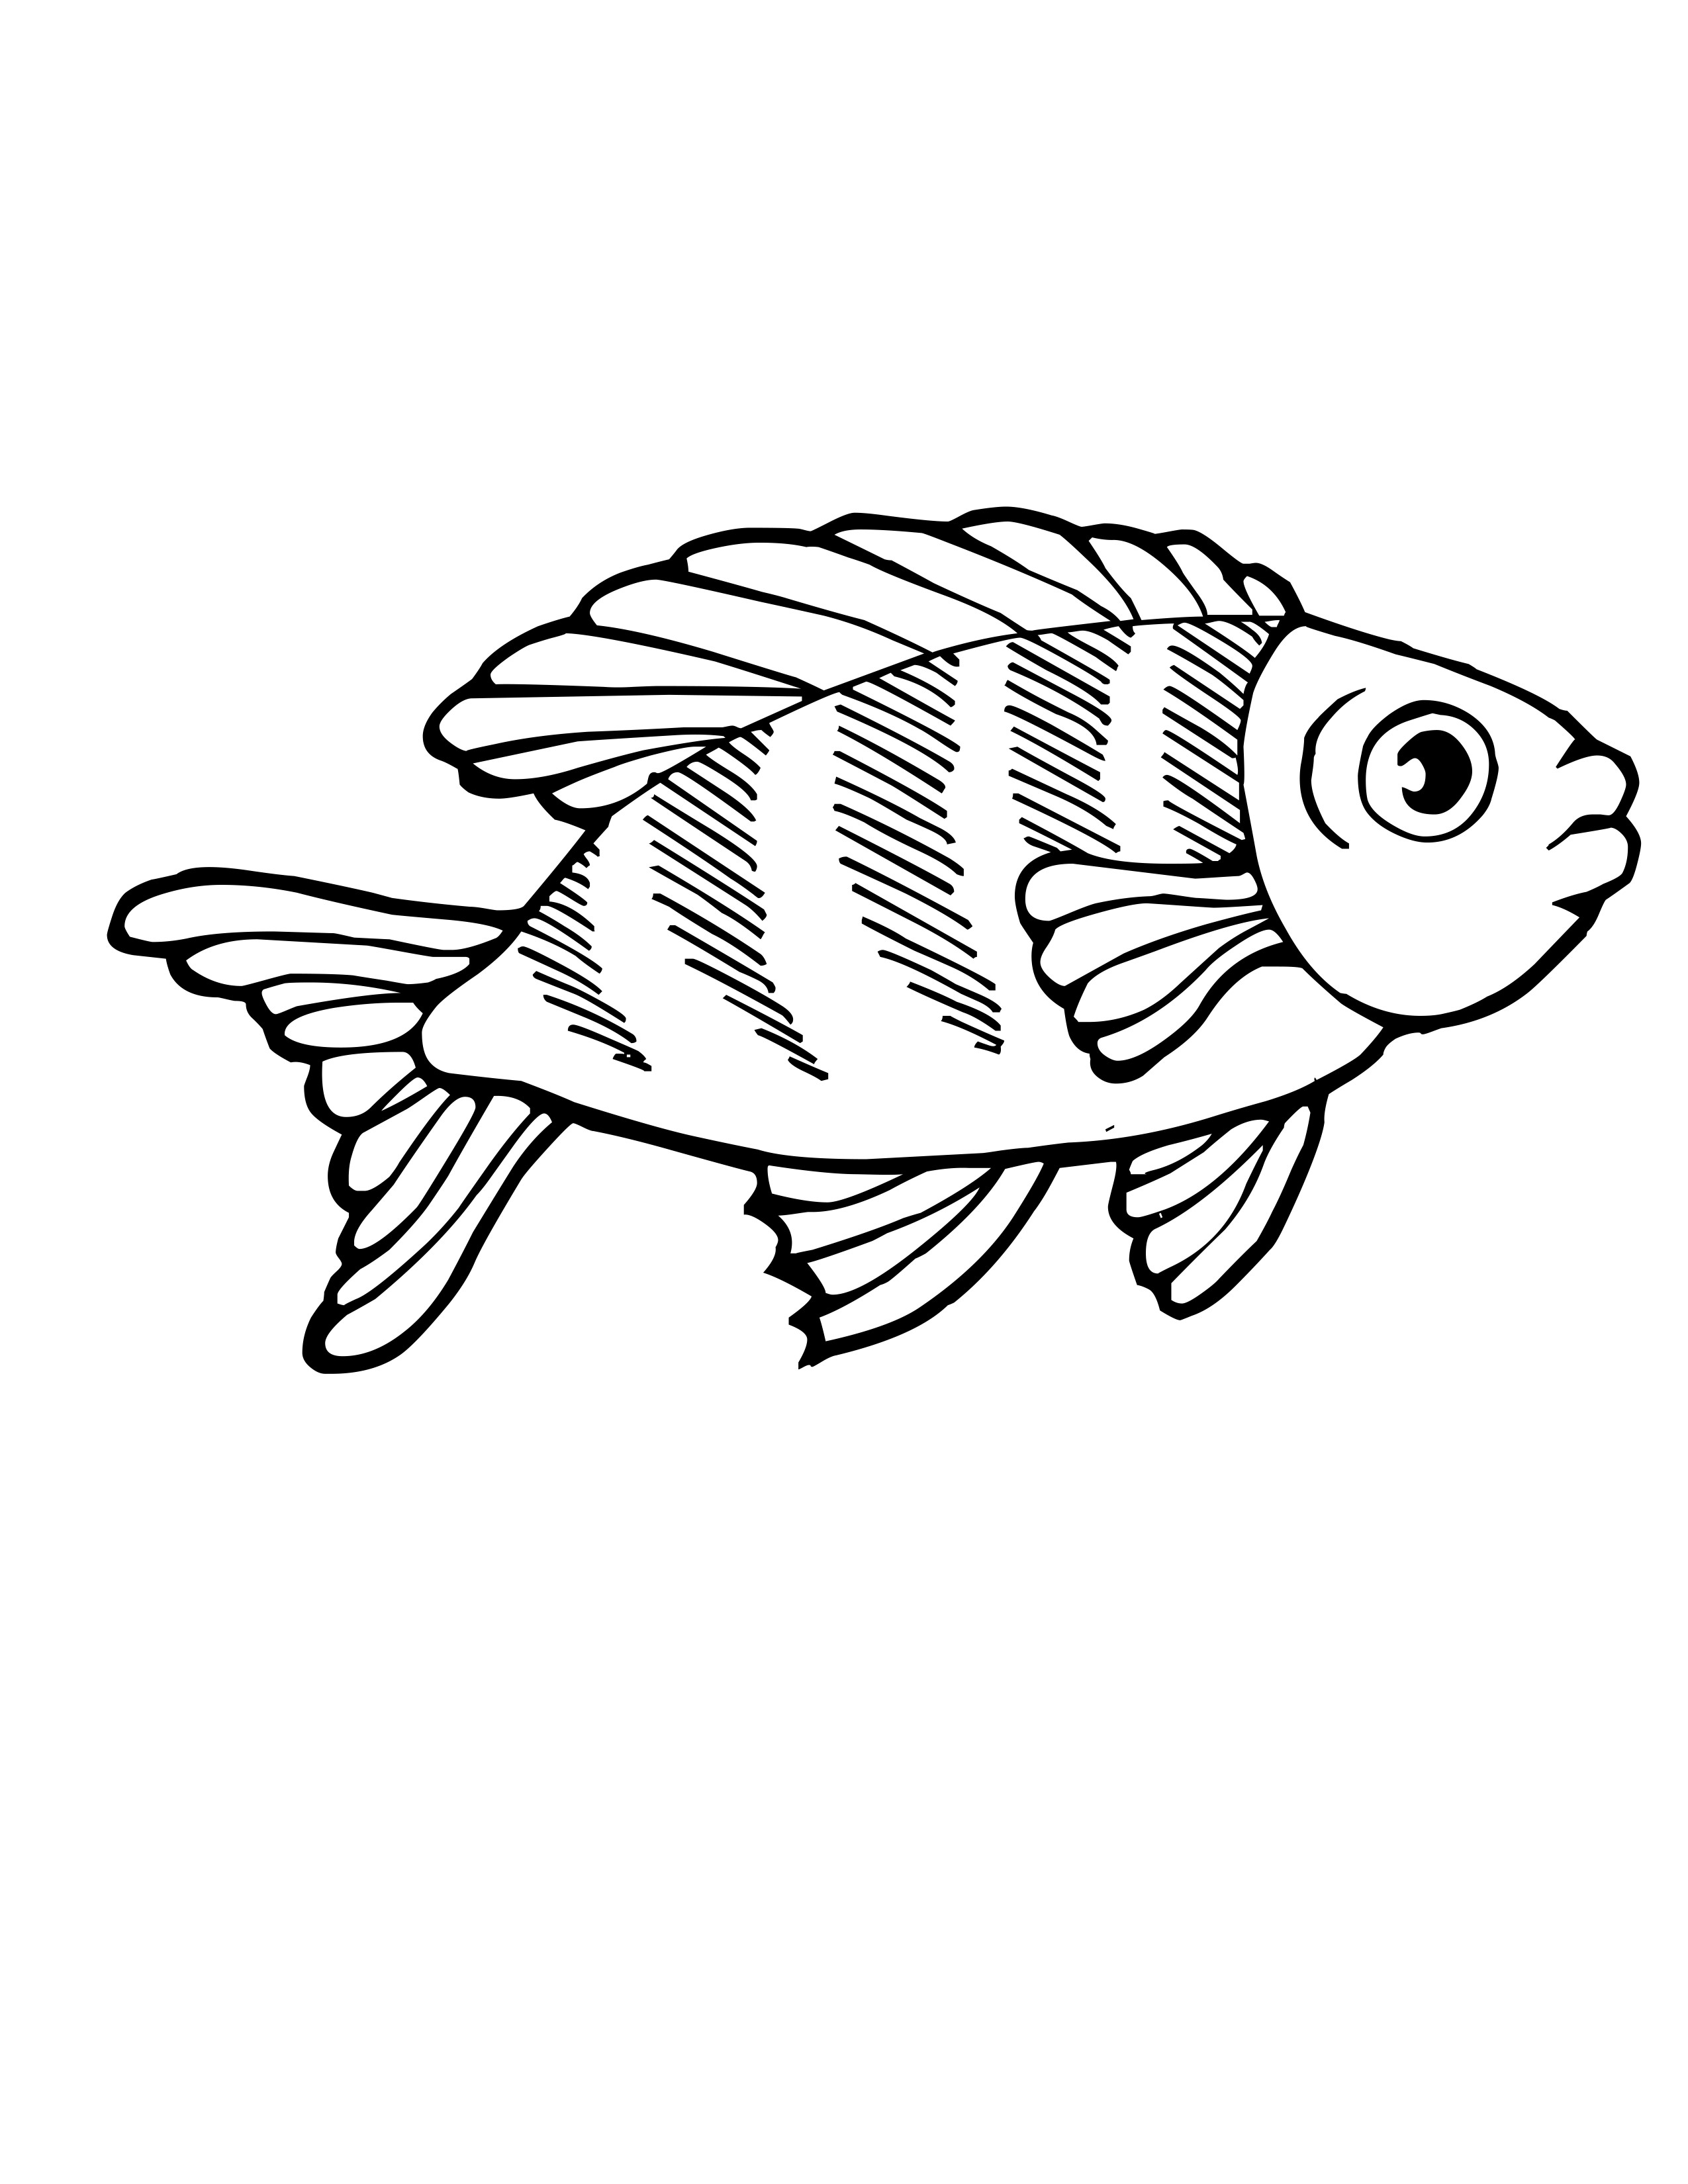 fish to color fish coloring page 2016 printable activity shelter color fish to